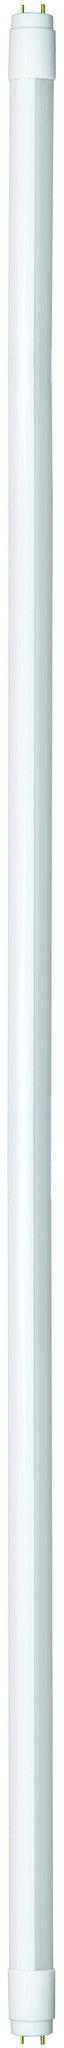 167370 - EcoWatts - Tube LED T8 G13 90cm 14W 4000K 1200Lm